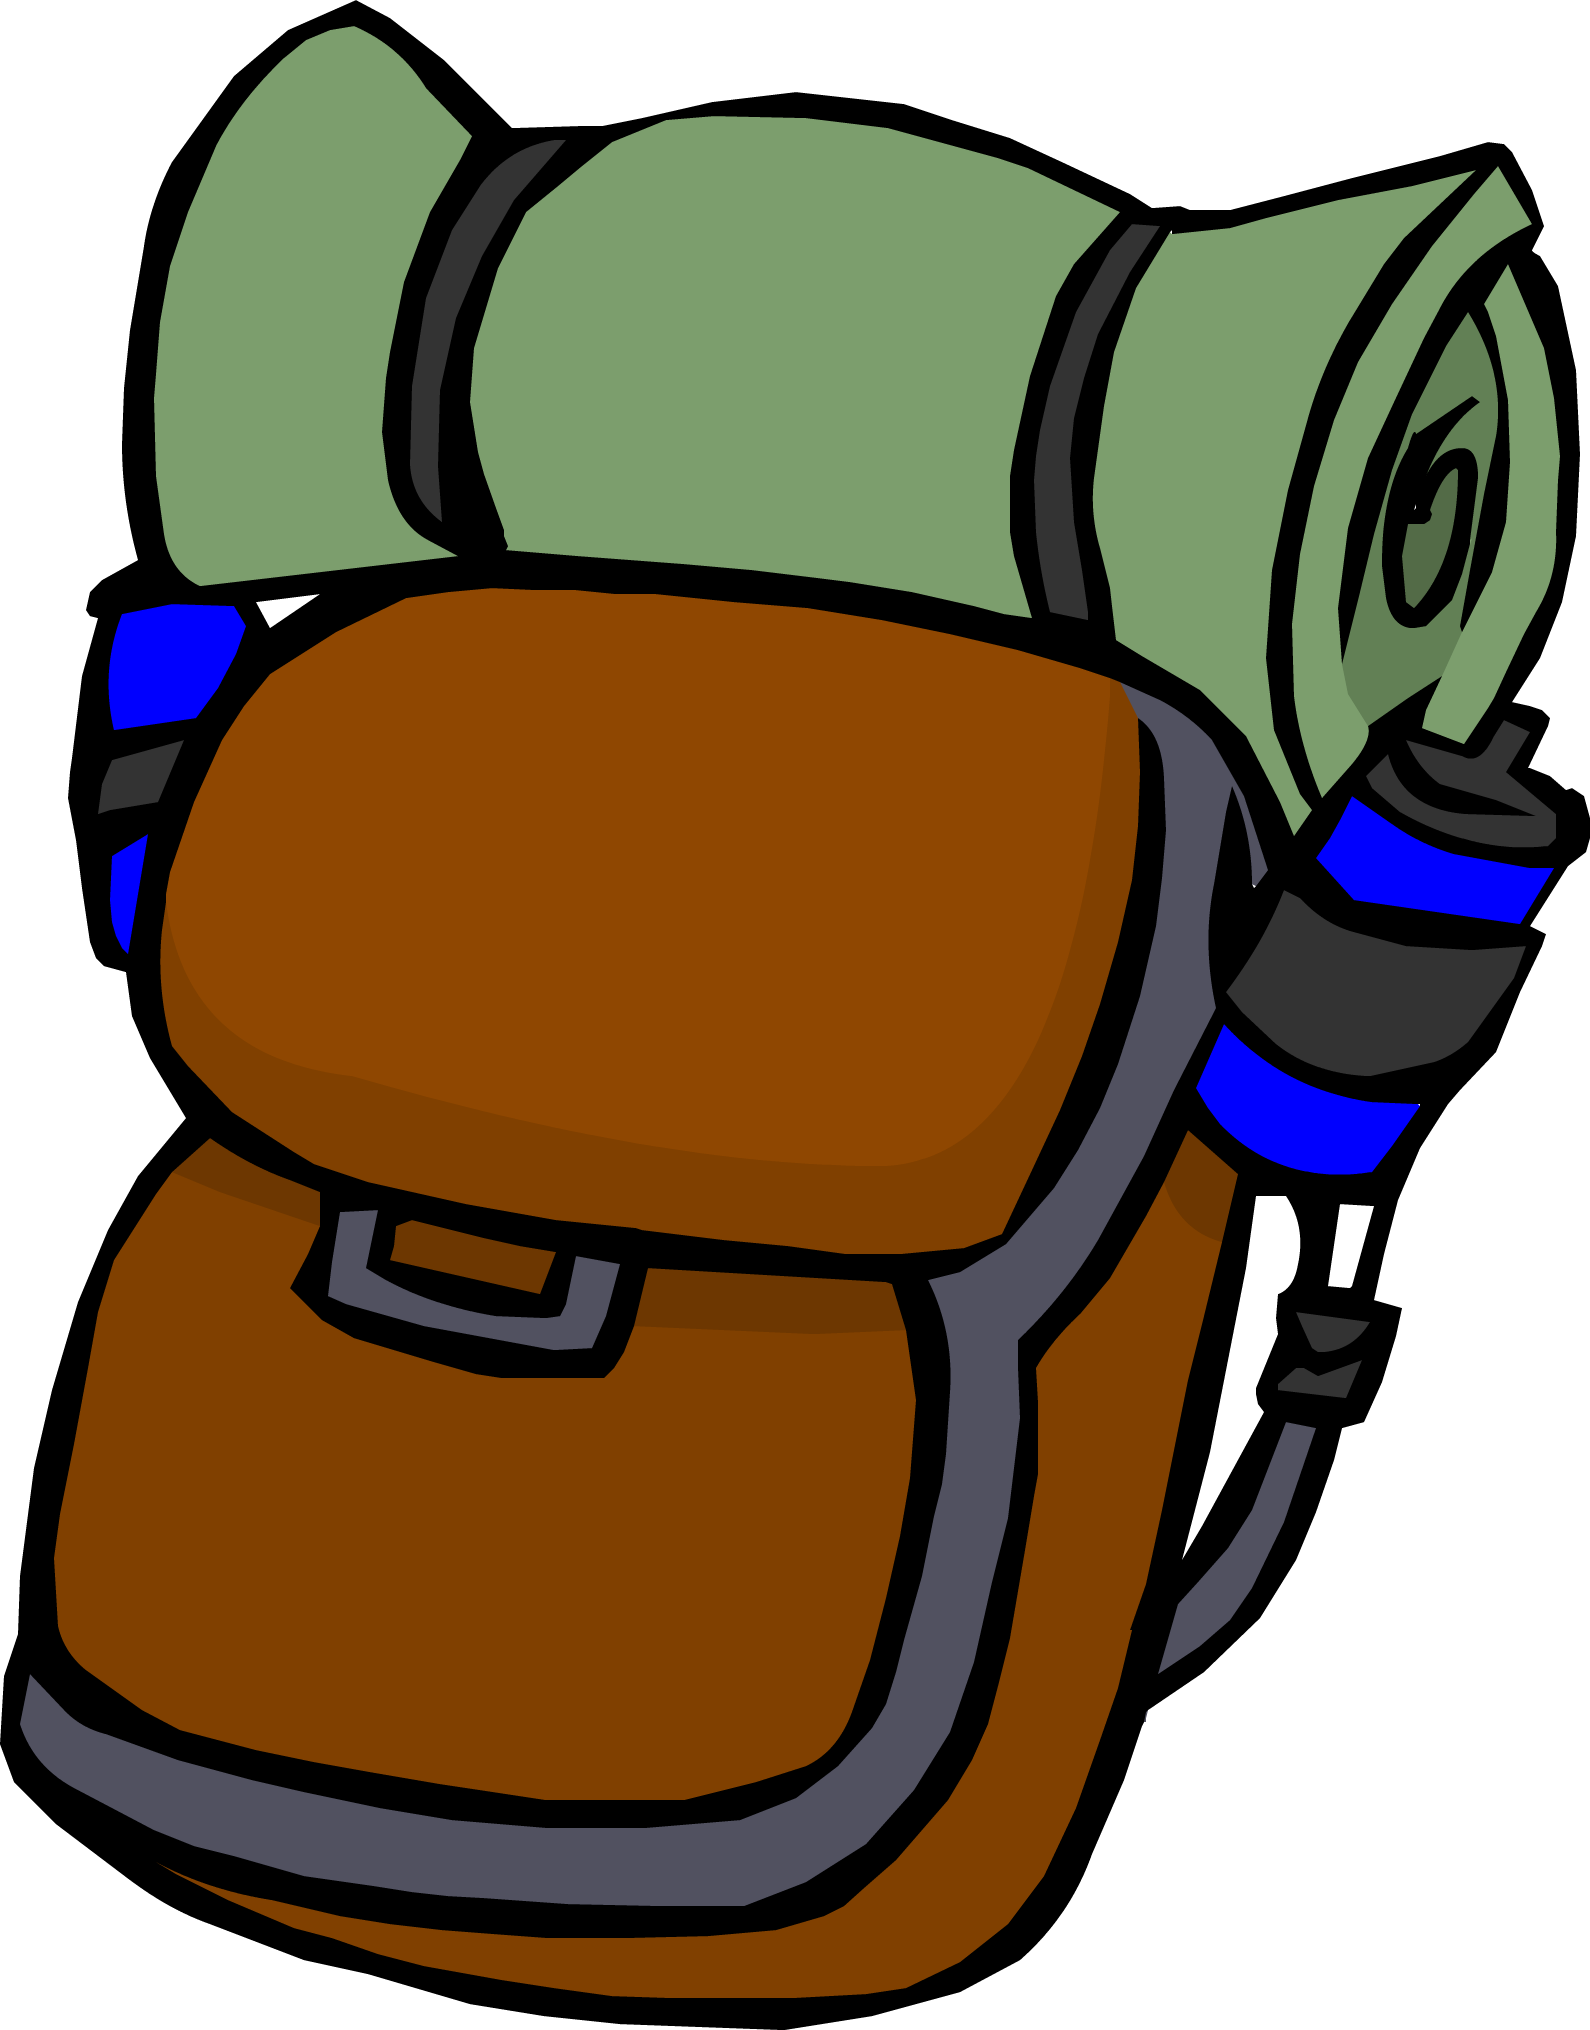 Image hiking backpack png. Hike clipart hikinh